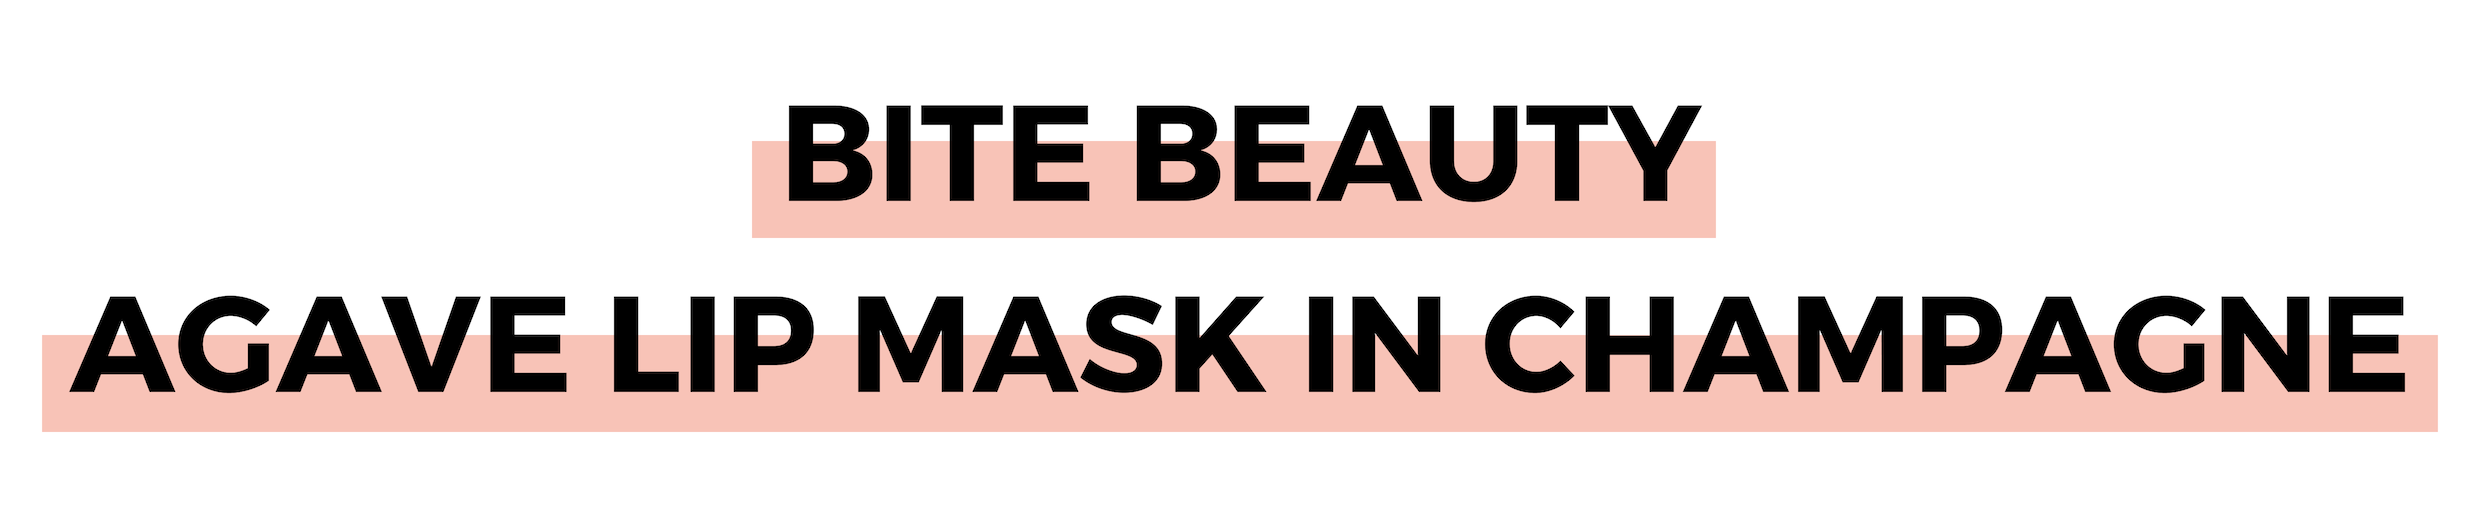 BITE BEAUTY AGAVE LIP MASK IN CHAMPAGNE.png